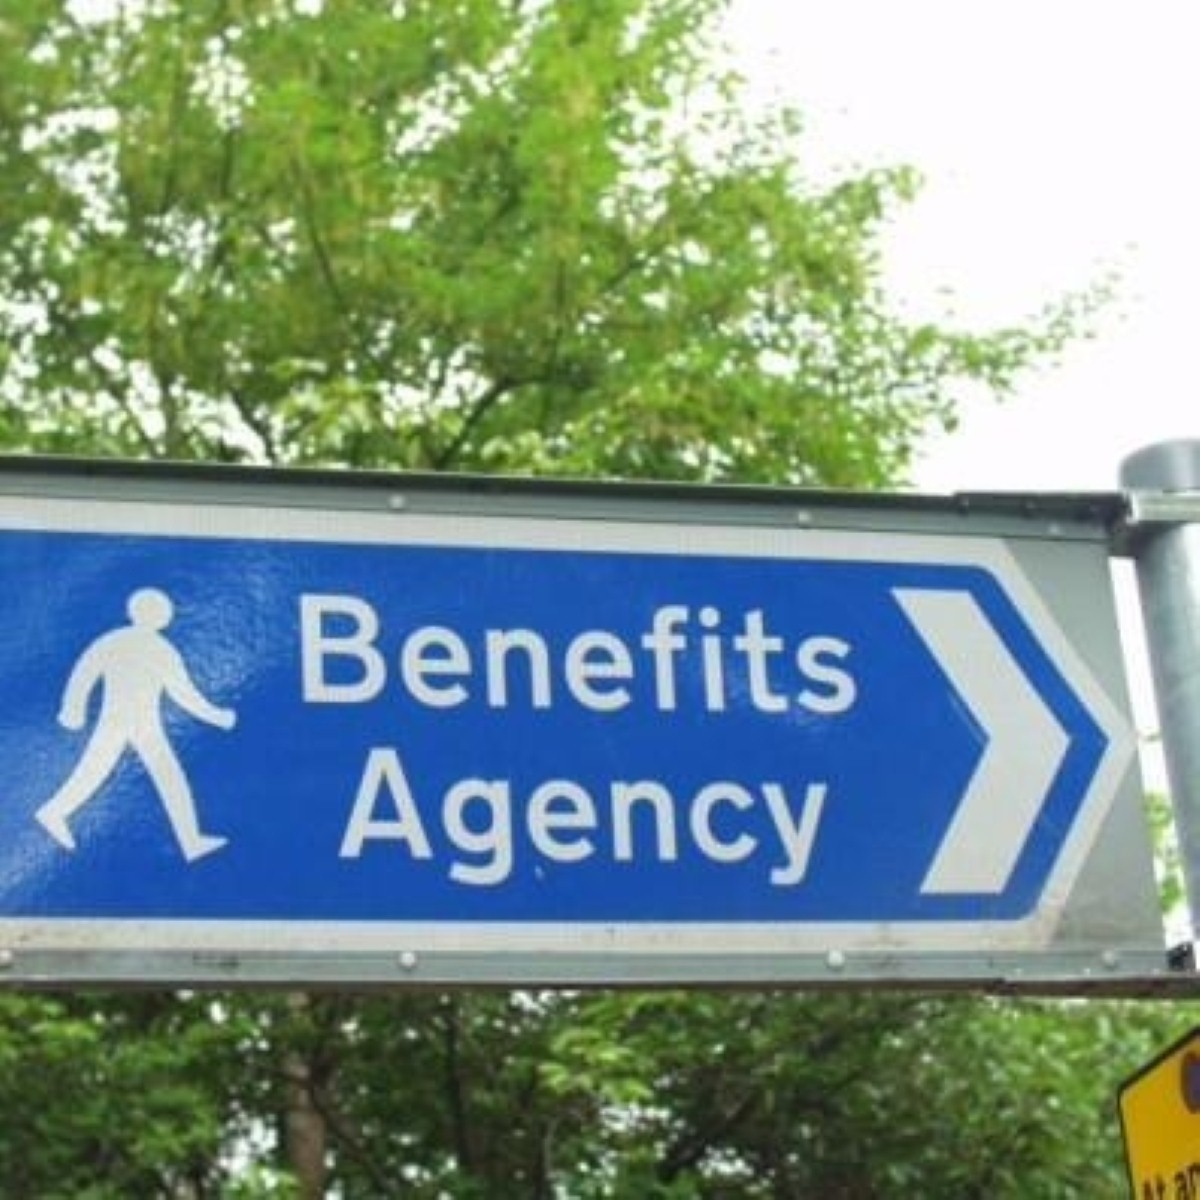 The lower benefit cap has seen its impact spread well beyond London